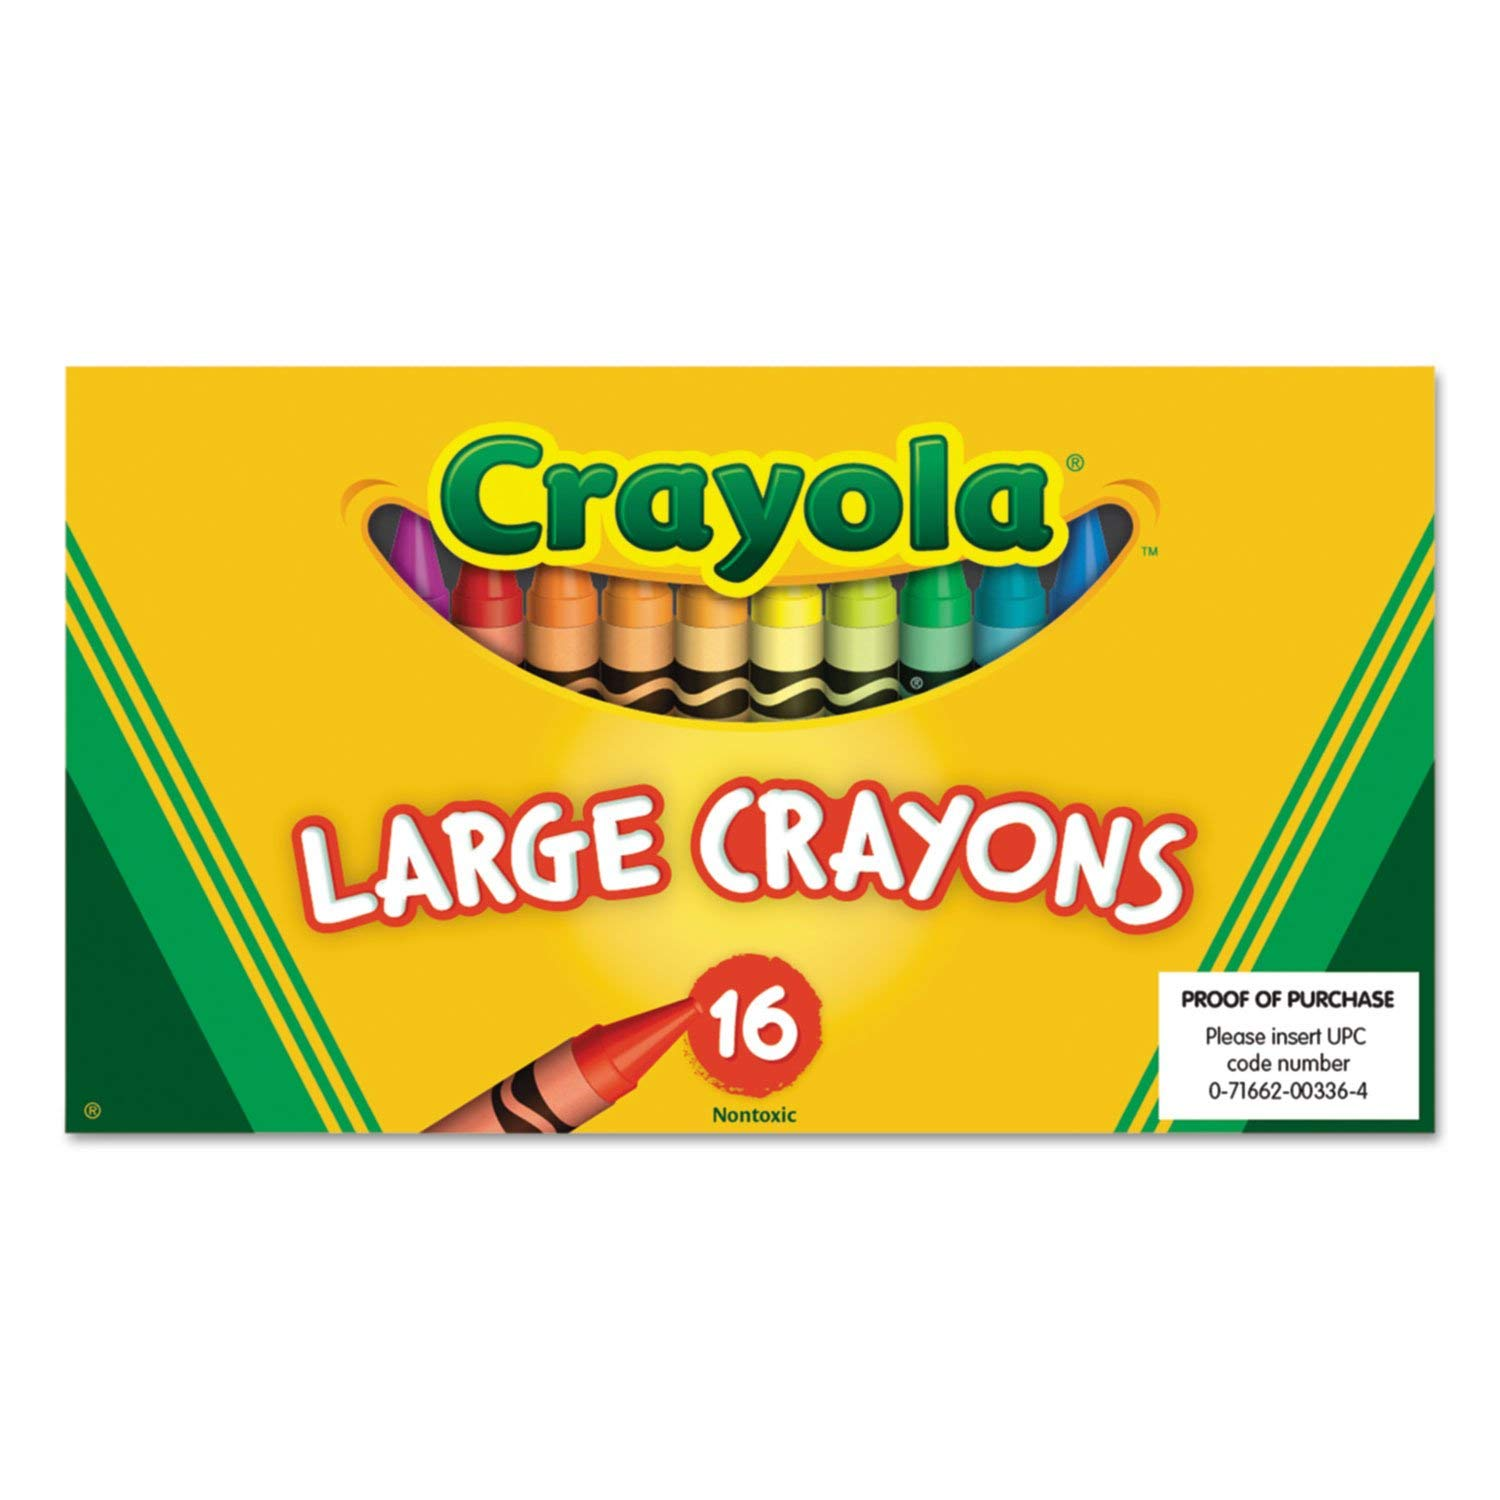 Wholesale CASE of 25 - Crayola Superior Quality Large Crayons-Large Crayons, Lift Lid, 16/BX, Ast